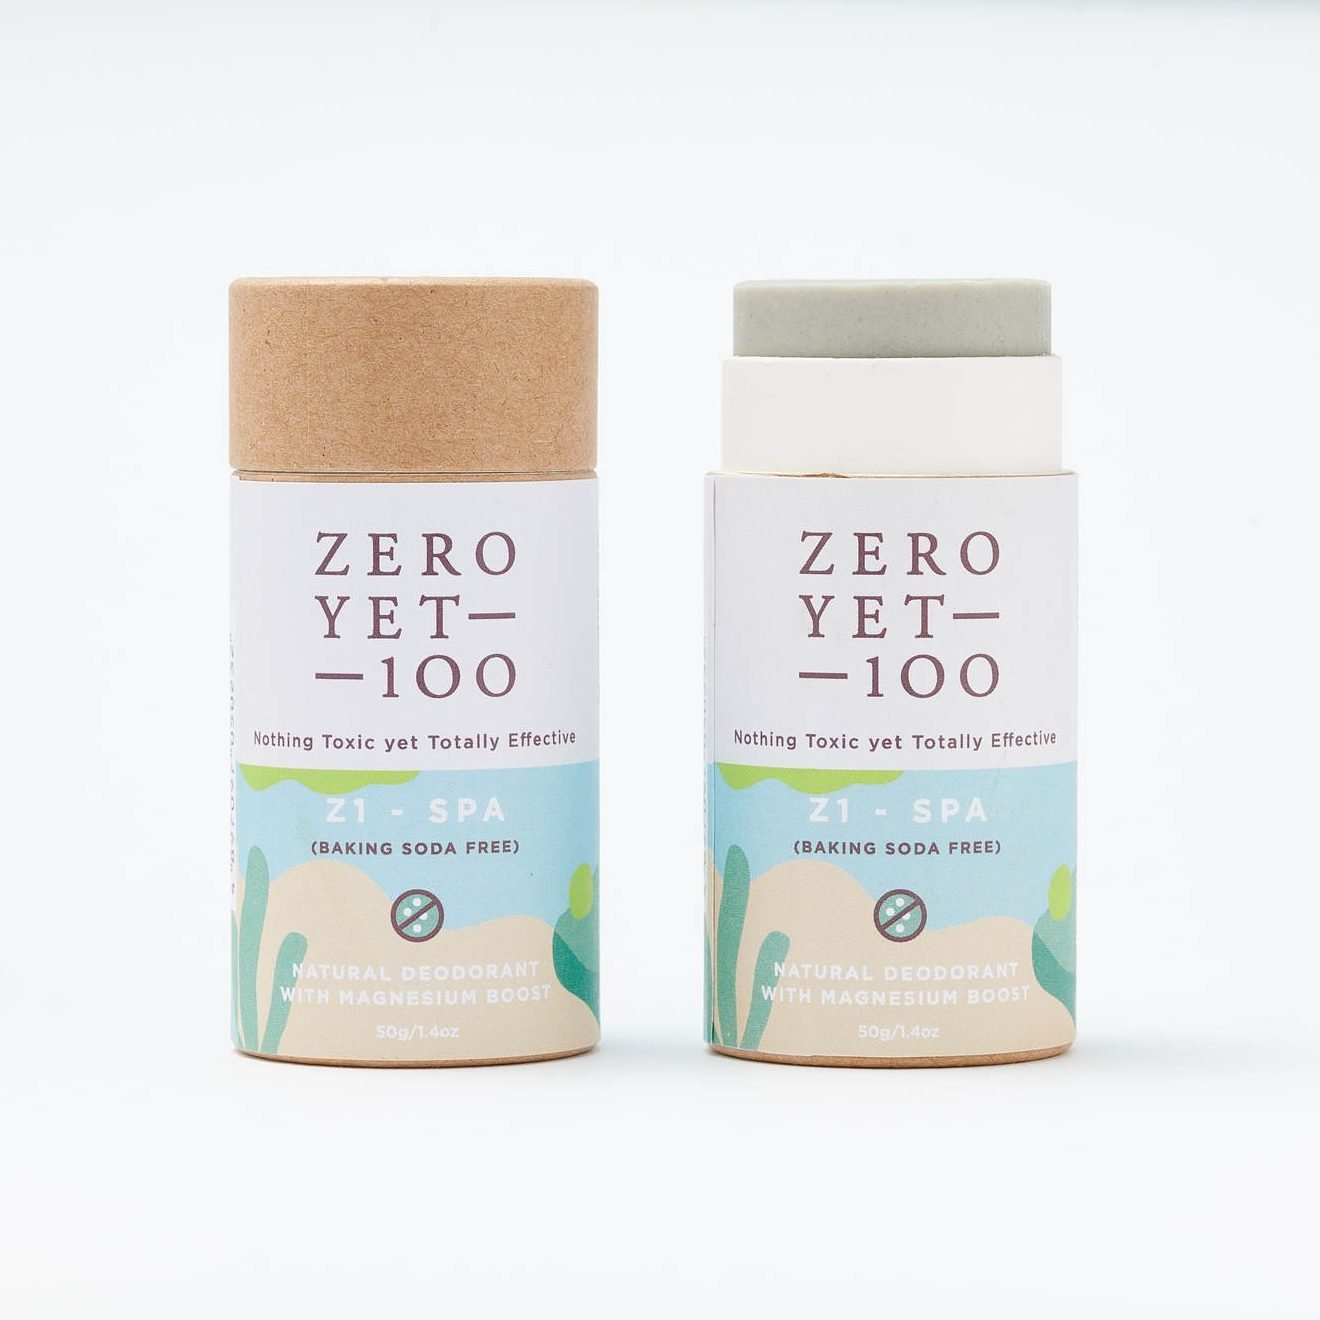 Z1 Spa Deodorant Push Up Stick | Baking Soda Free | ZeroYet100